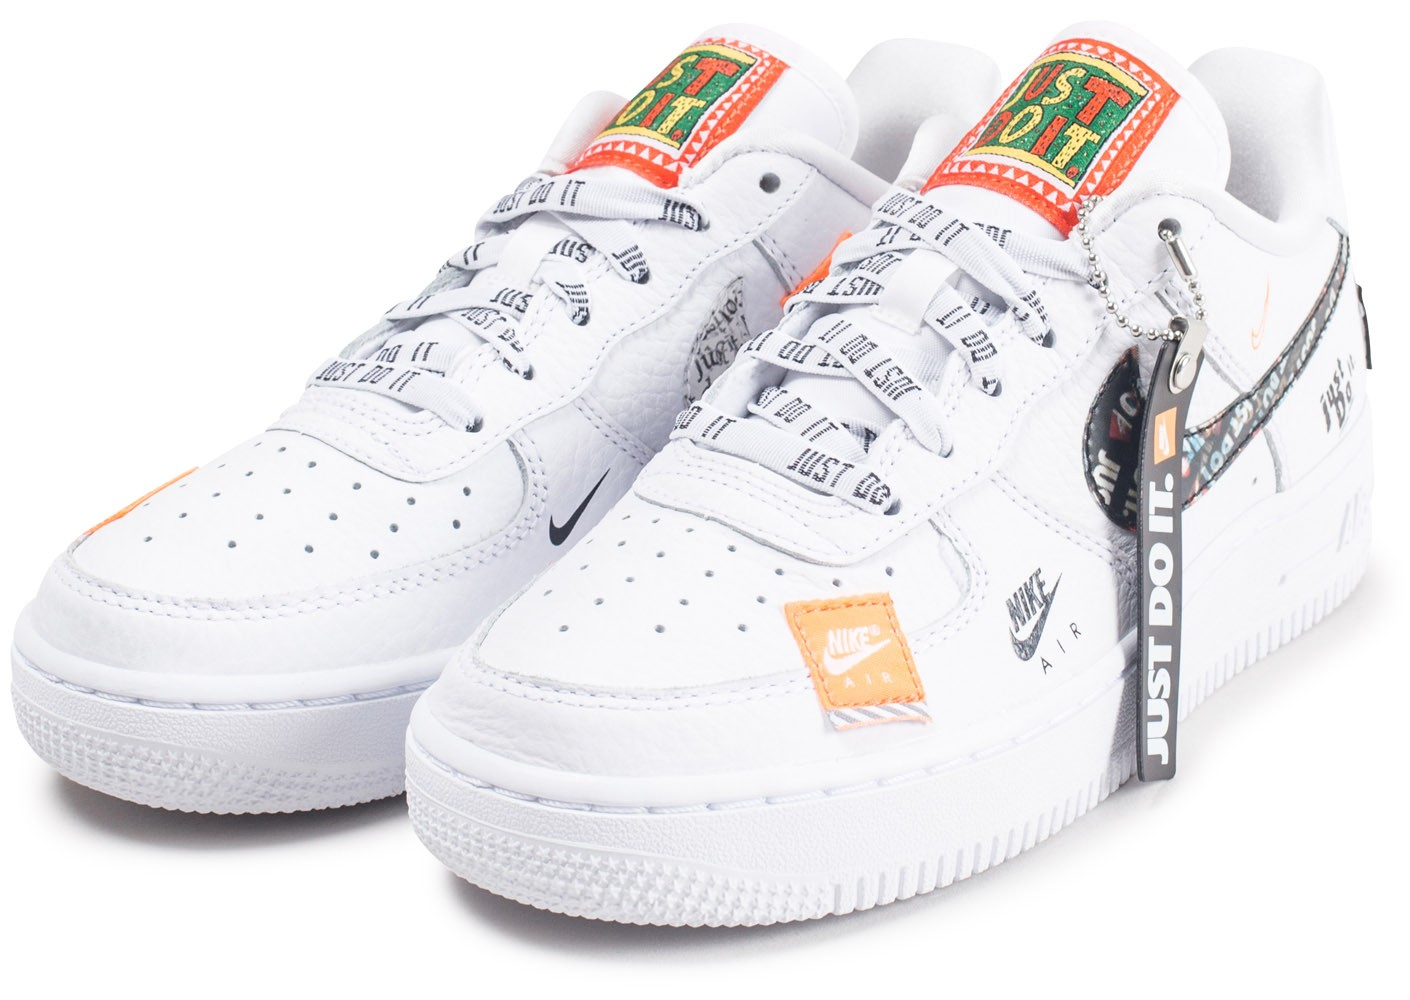 online retailer 00ab6 fe679 Chaussures Nike Air Force 1 Just Do It Premium blanche junior vue intérieure  ...